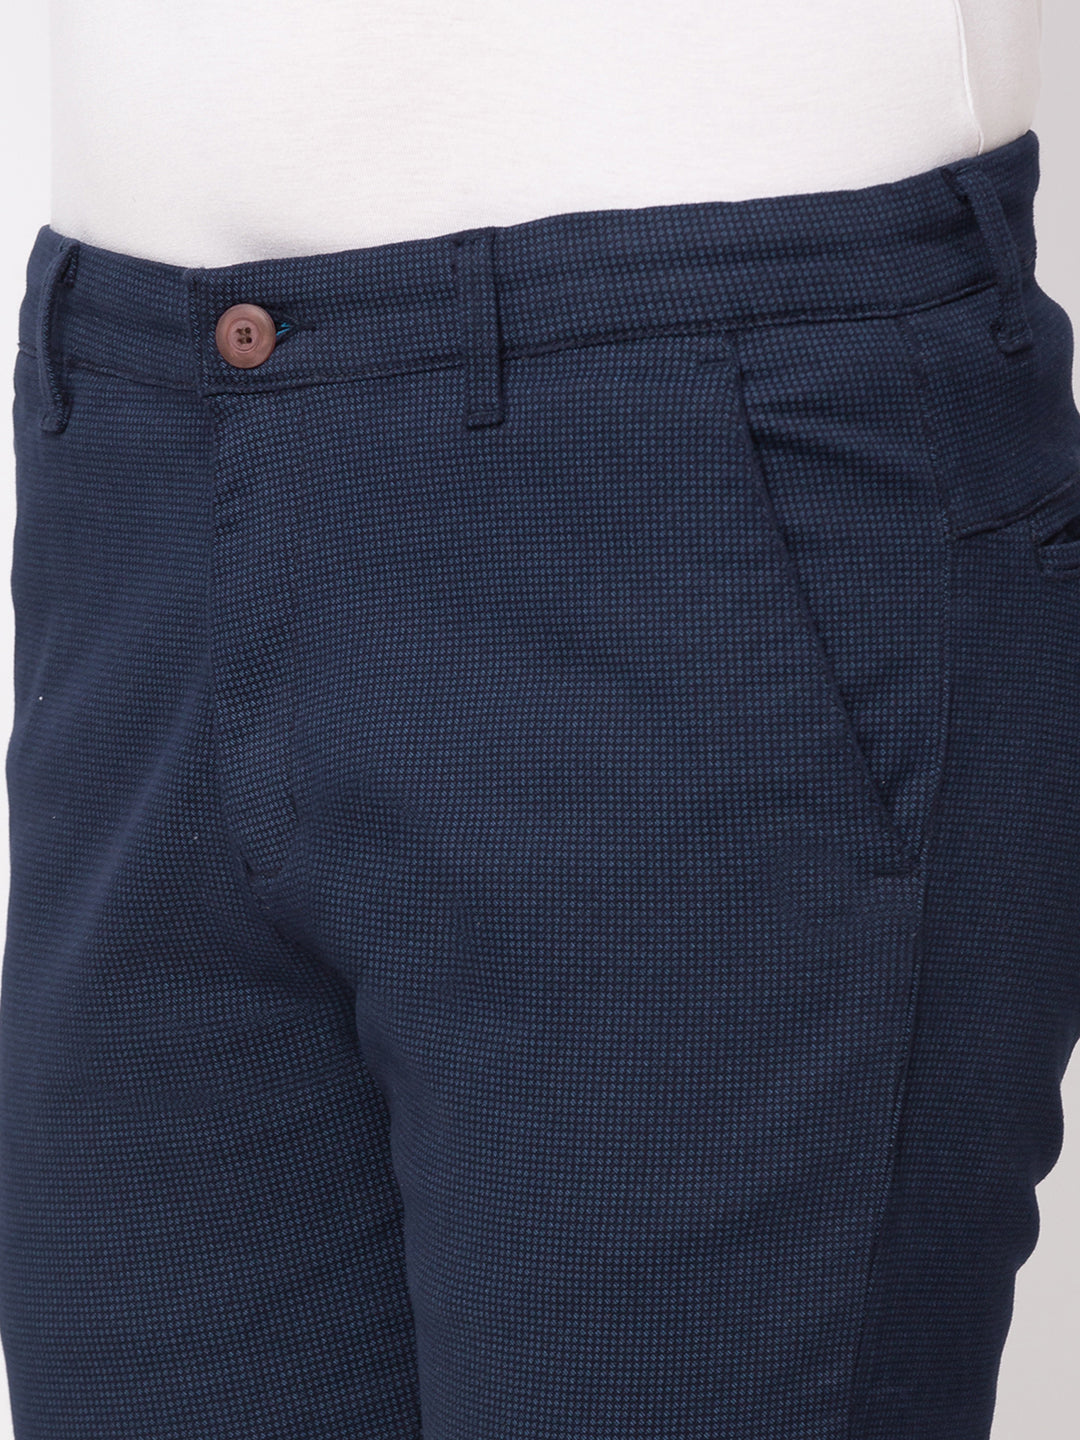 Globus Navy Blue Checked Chinos-4